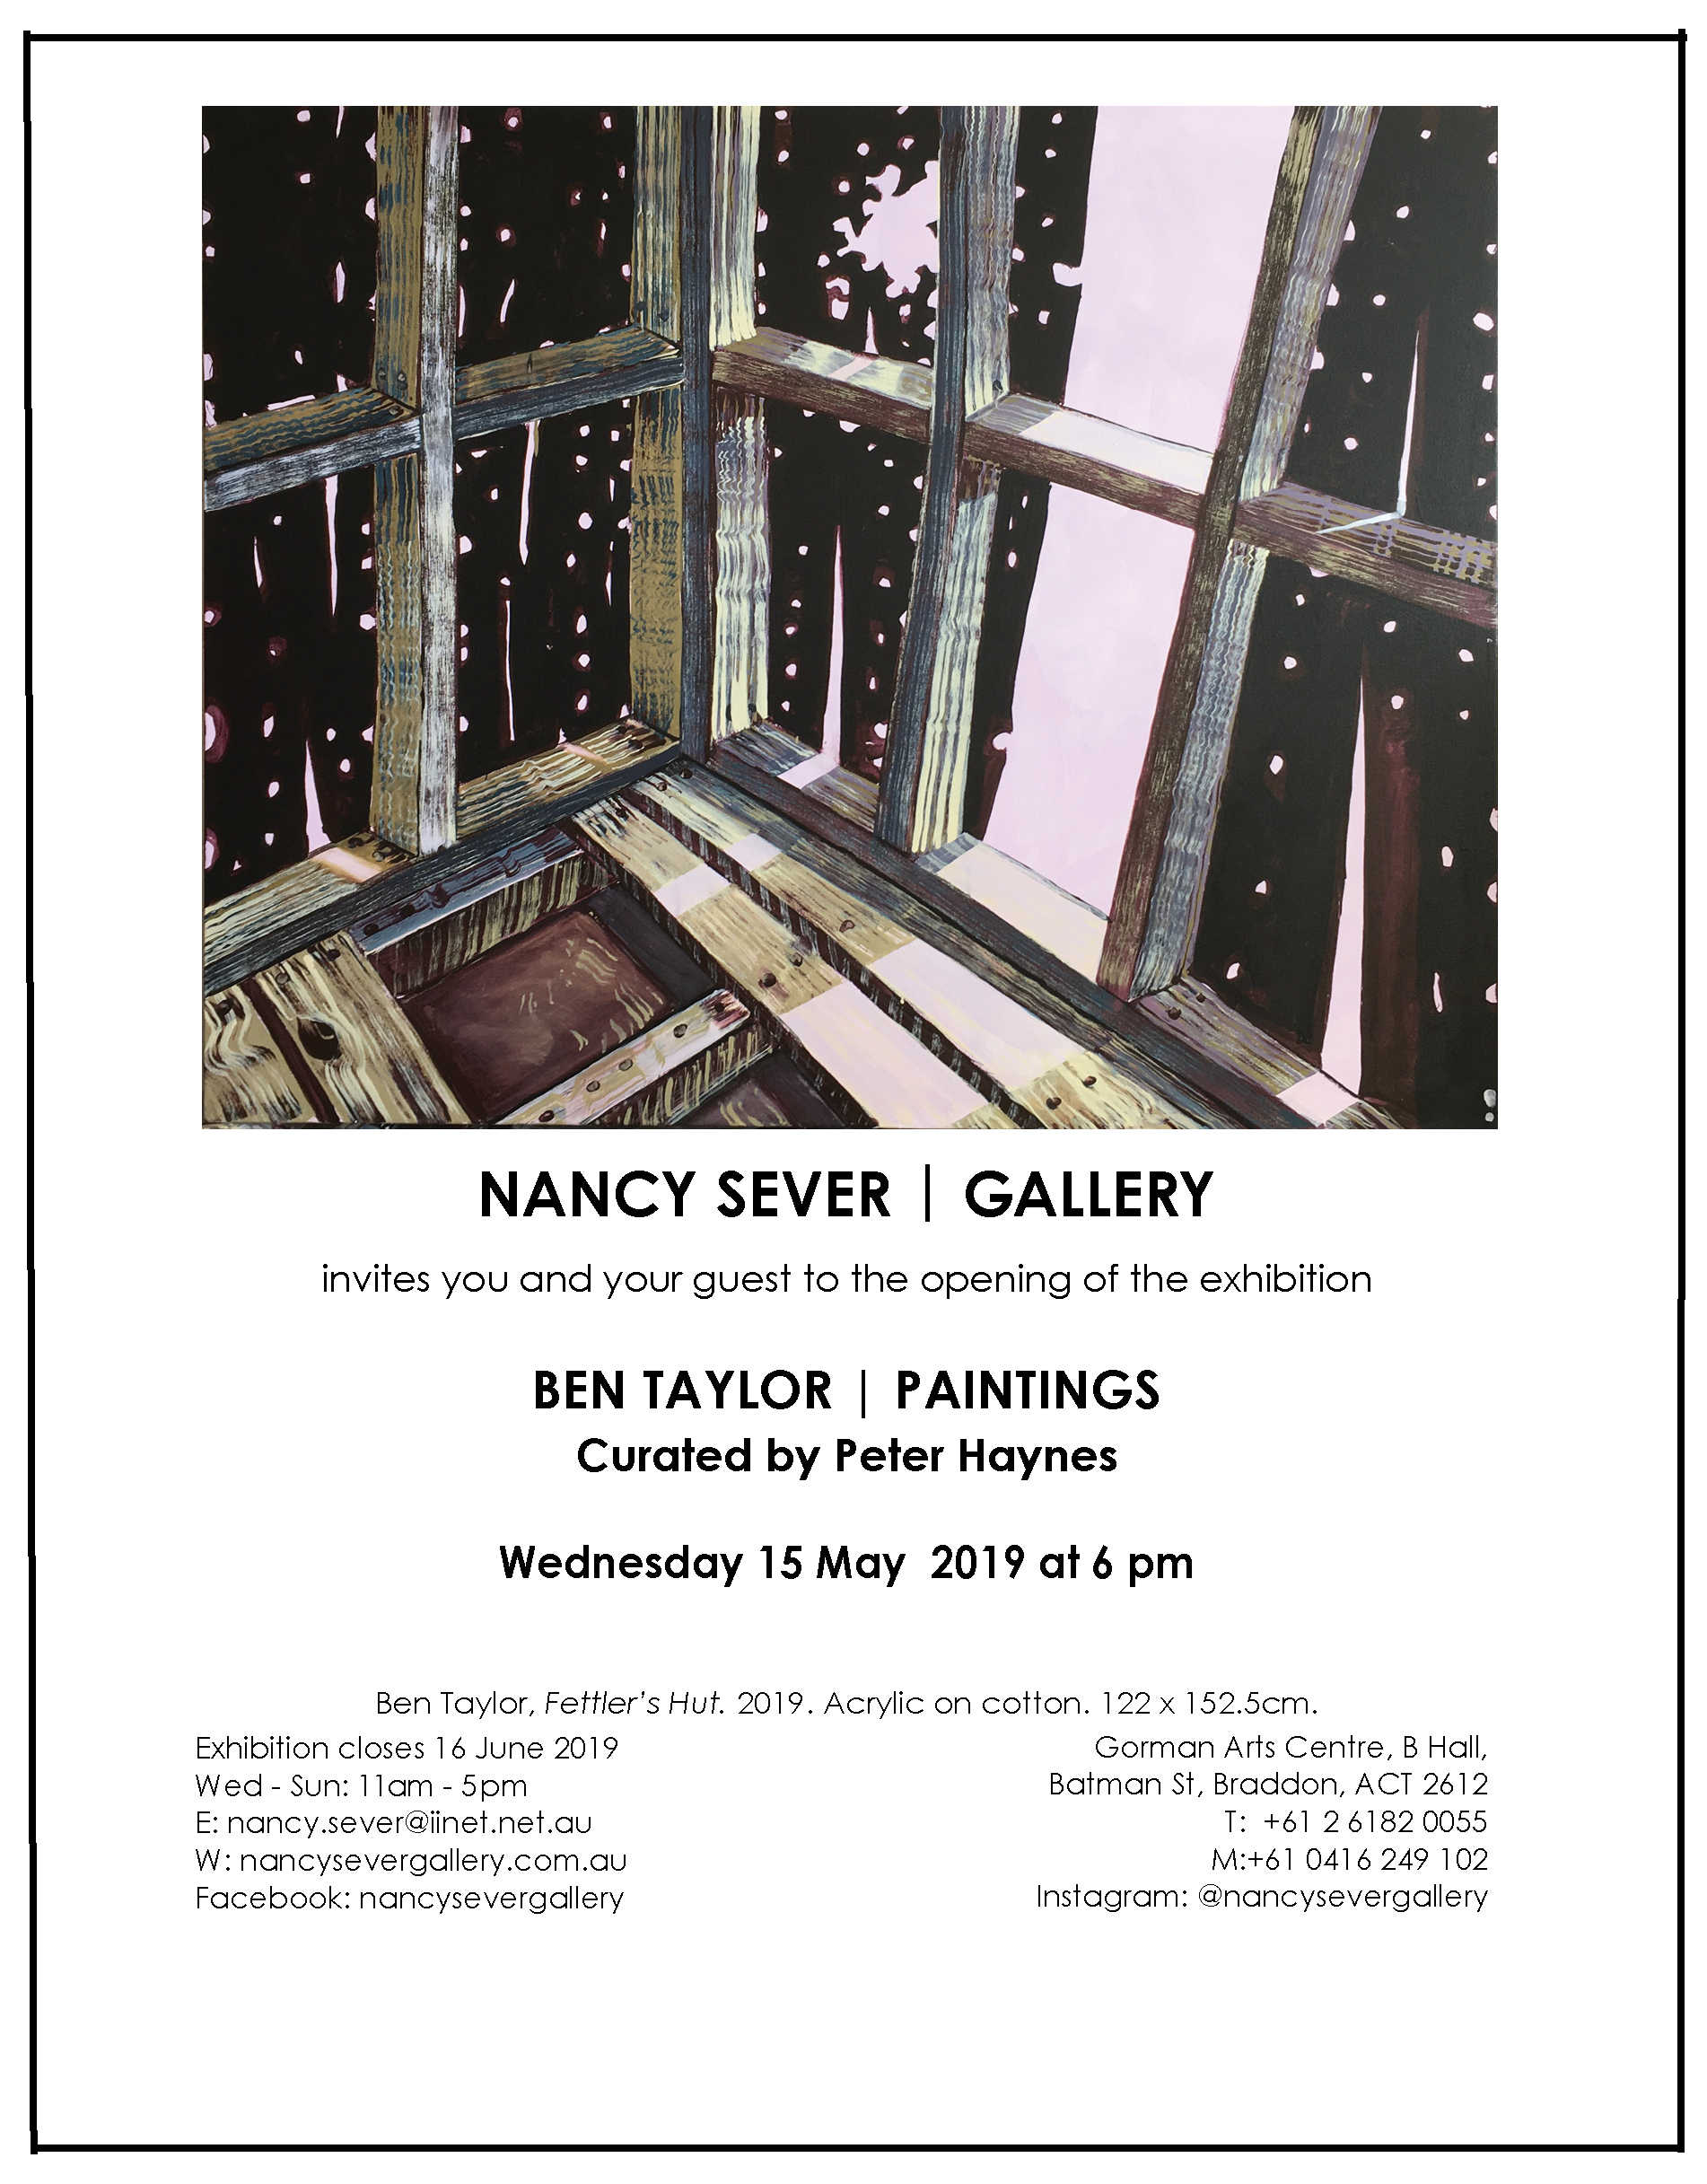 NSG.Ben Taylor exhibition email invitation.jpg